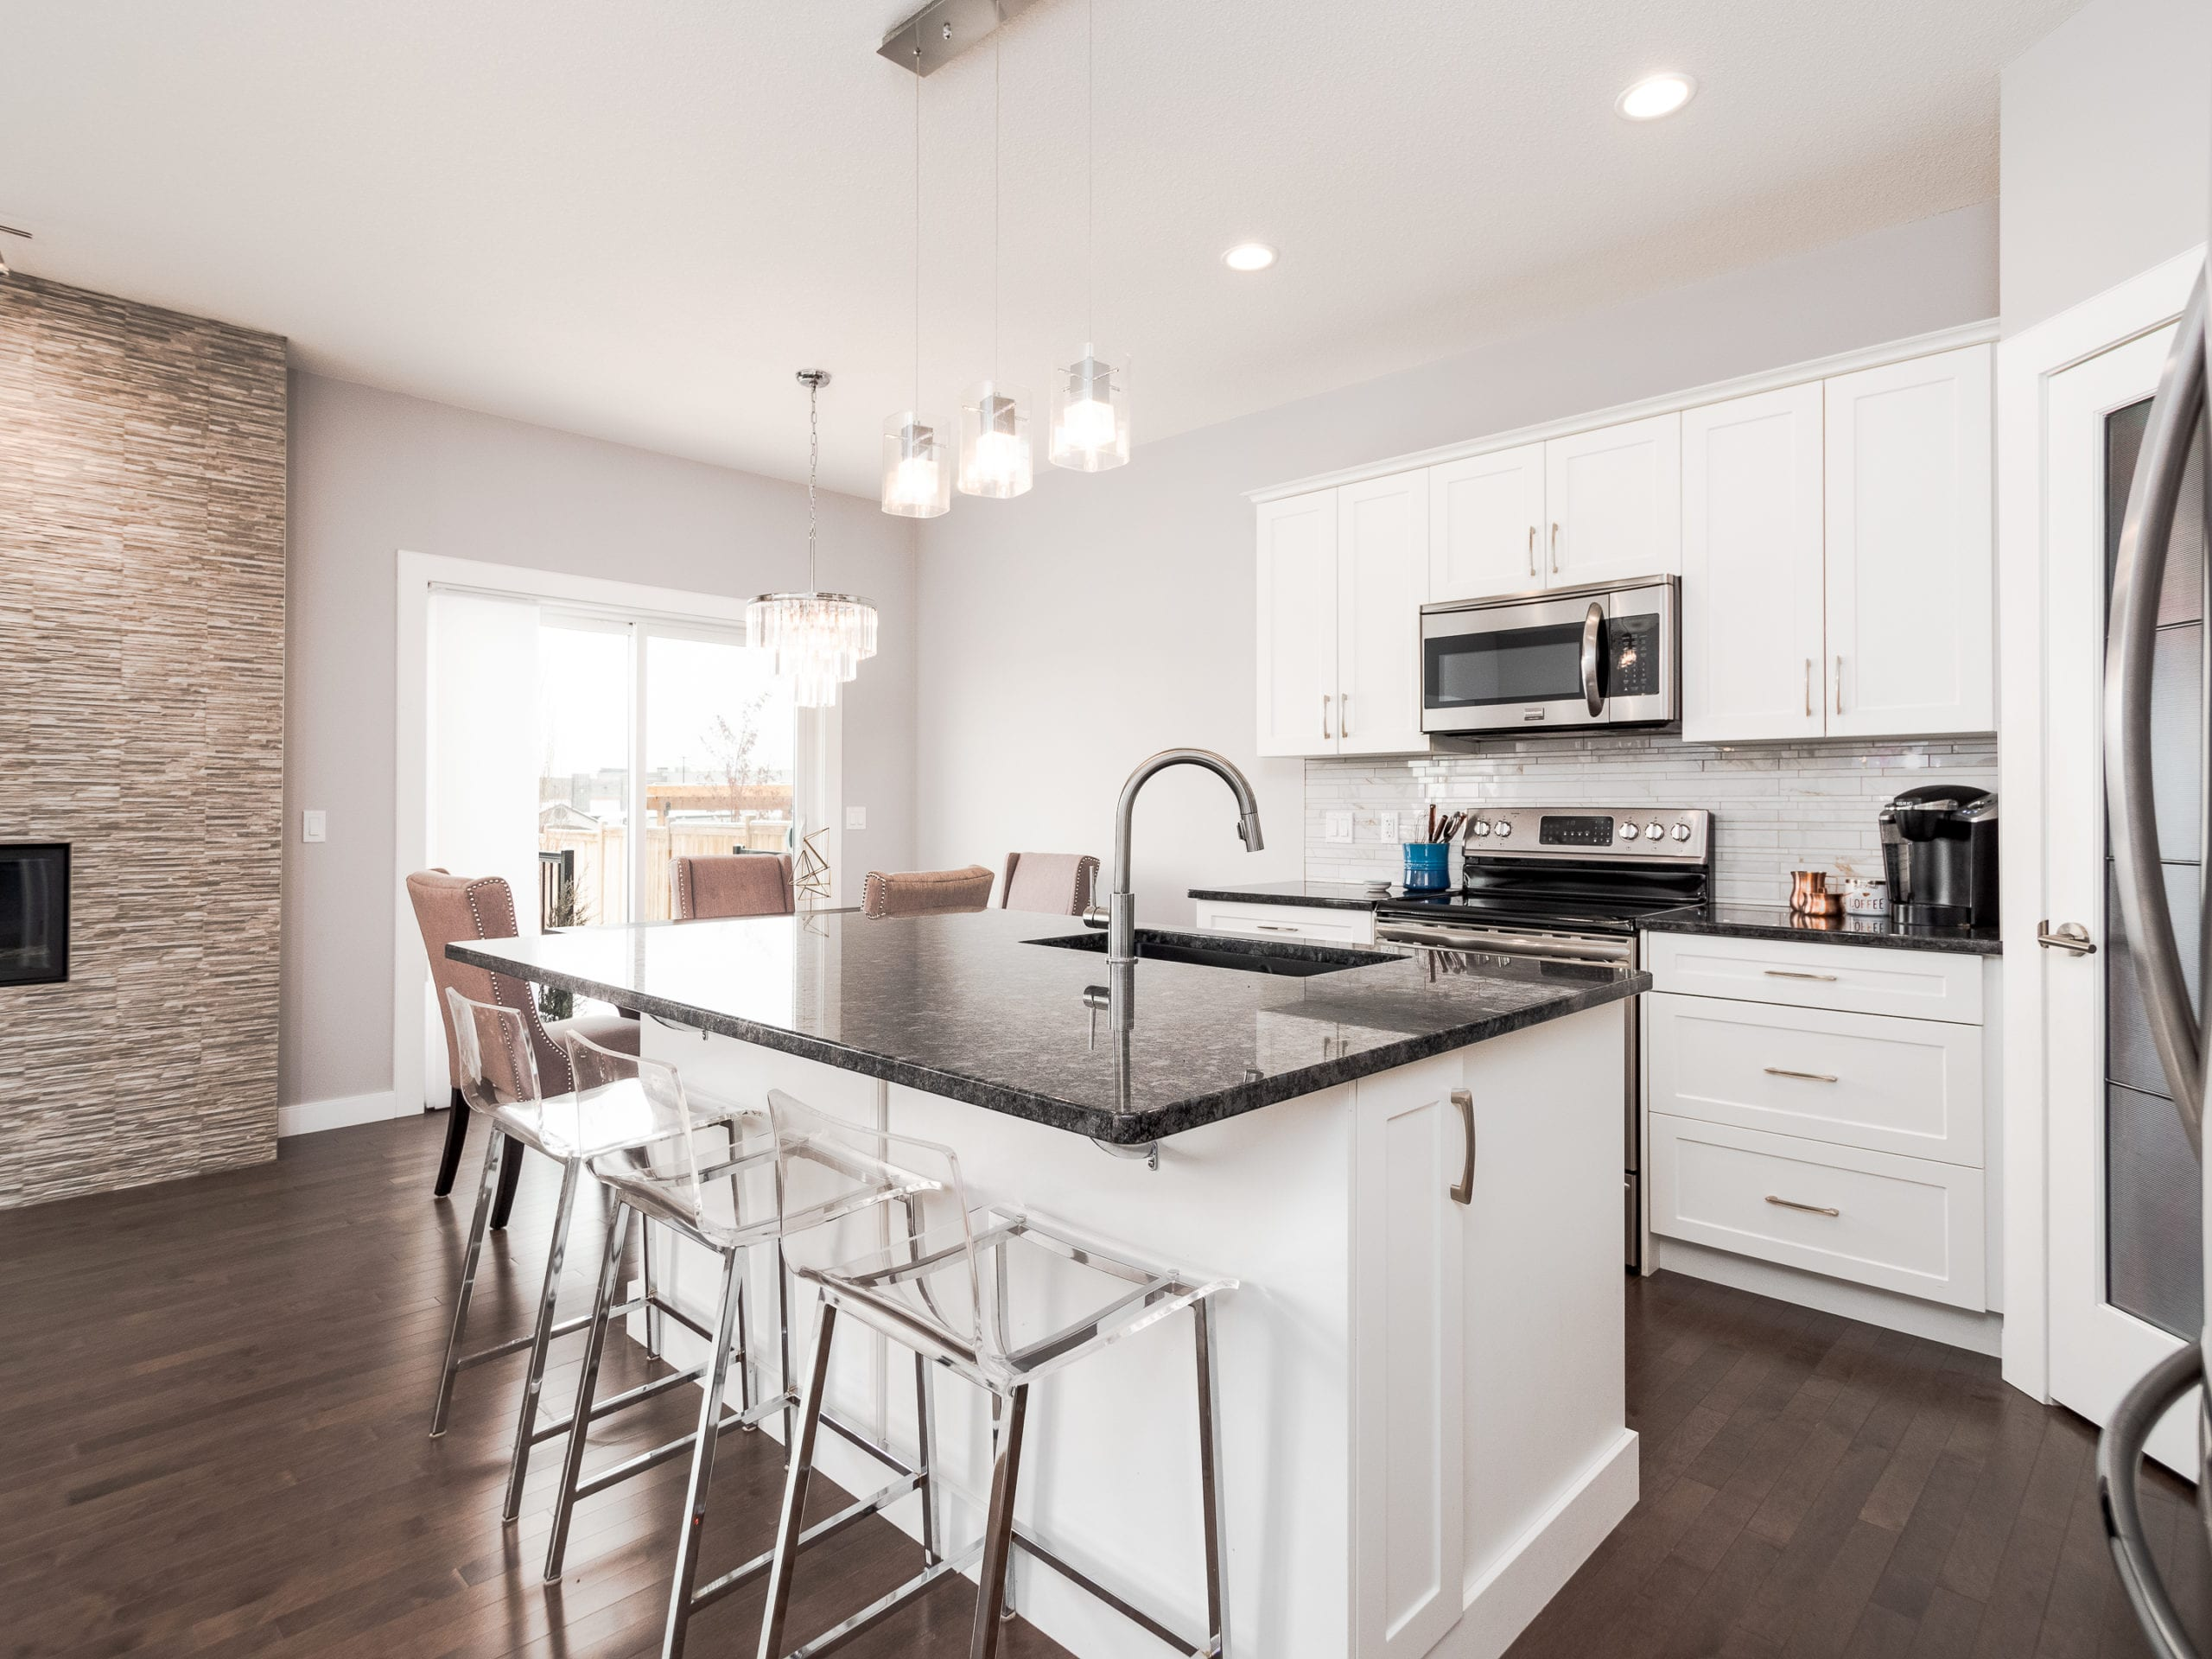 Hello Gorgeous - 1306 Kings Heights Way SE, Airdrie AB. - Tara Molina Real Estate (4 of 53)